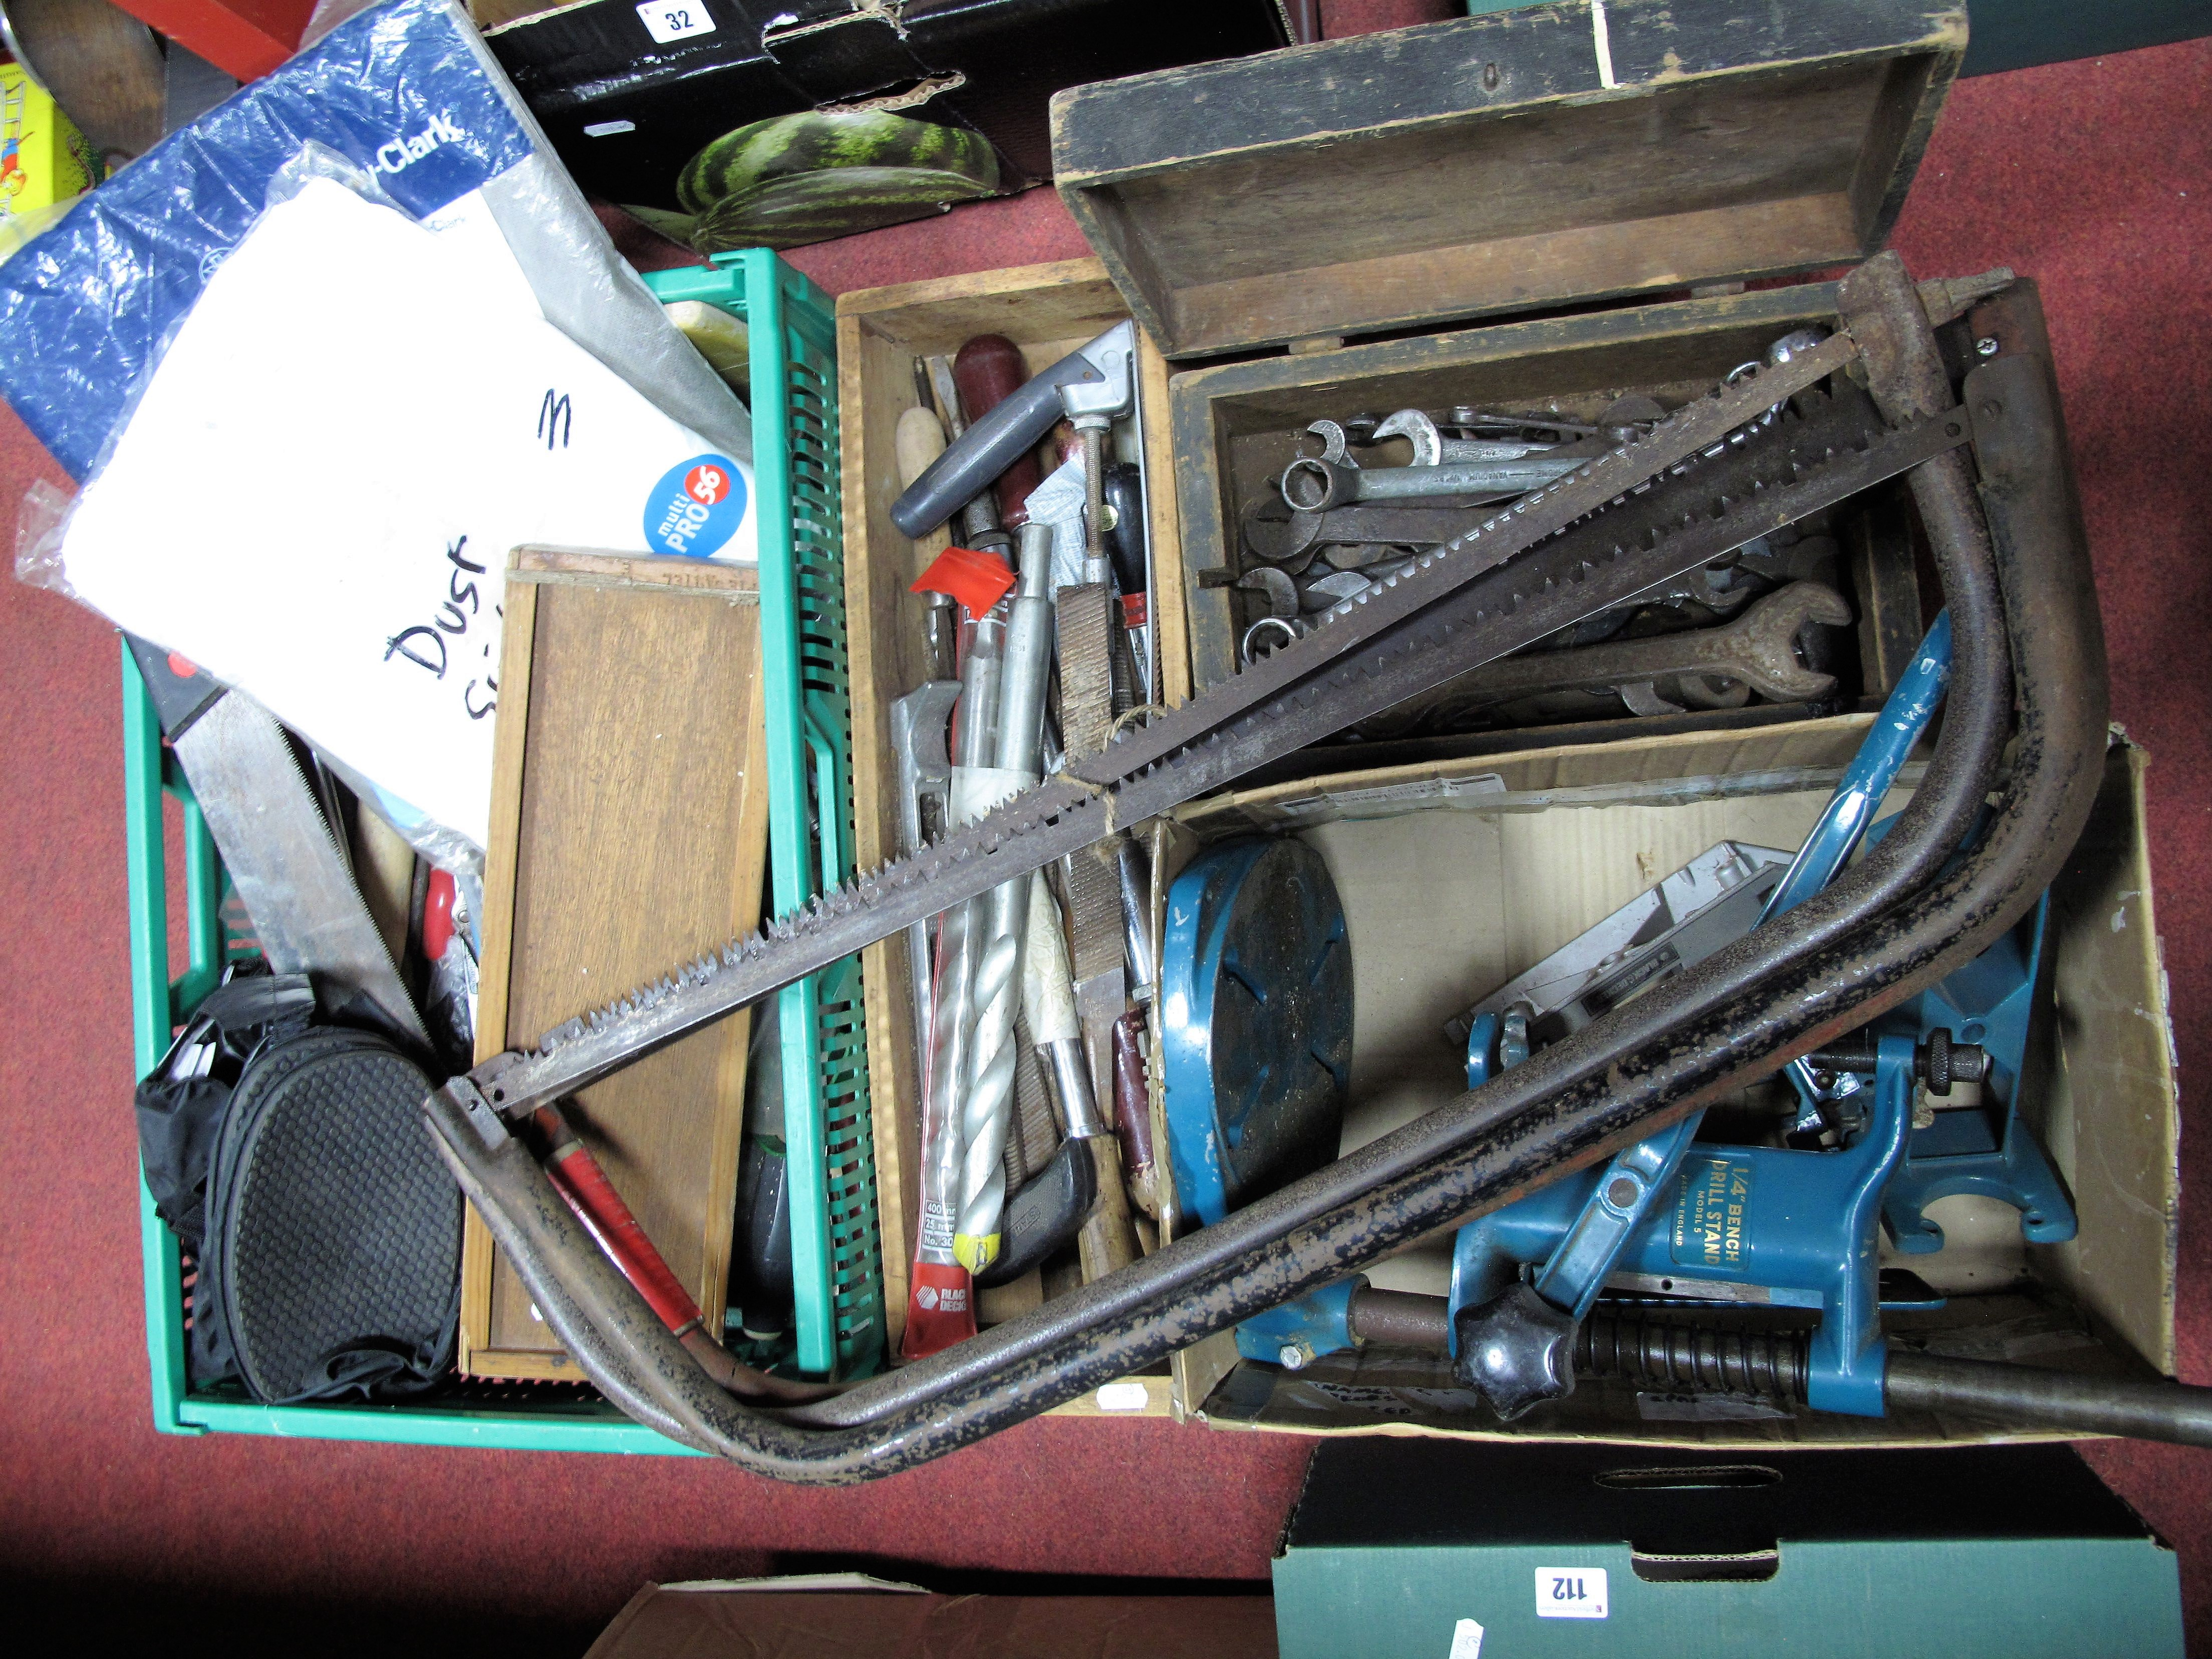 Lot 25 - Saws, spanners, pliers, drill bits, dust suits, etc.